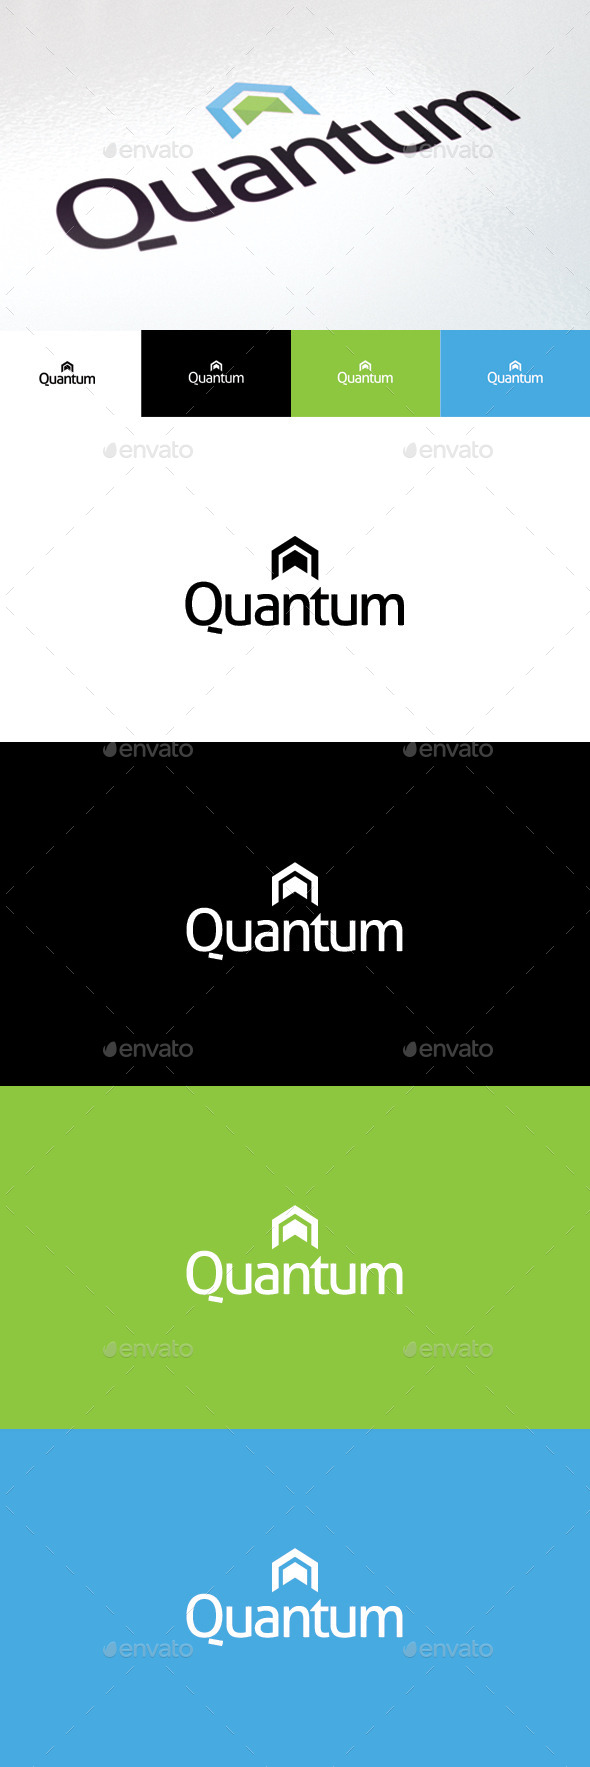 Quantum Logo - Vector Abstract